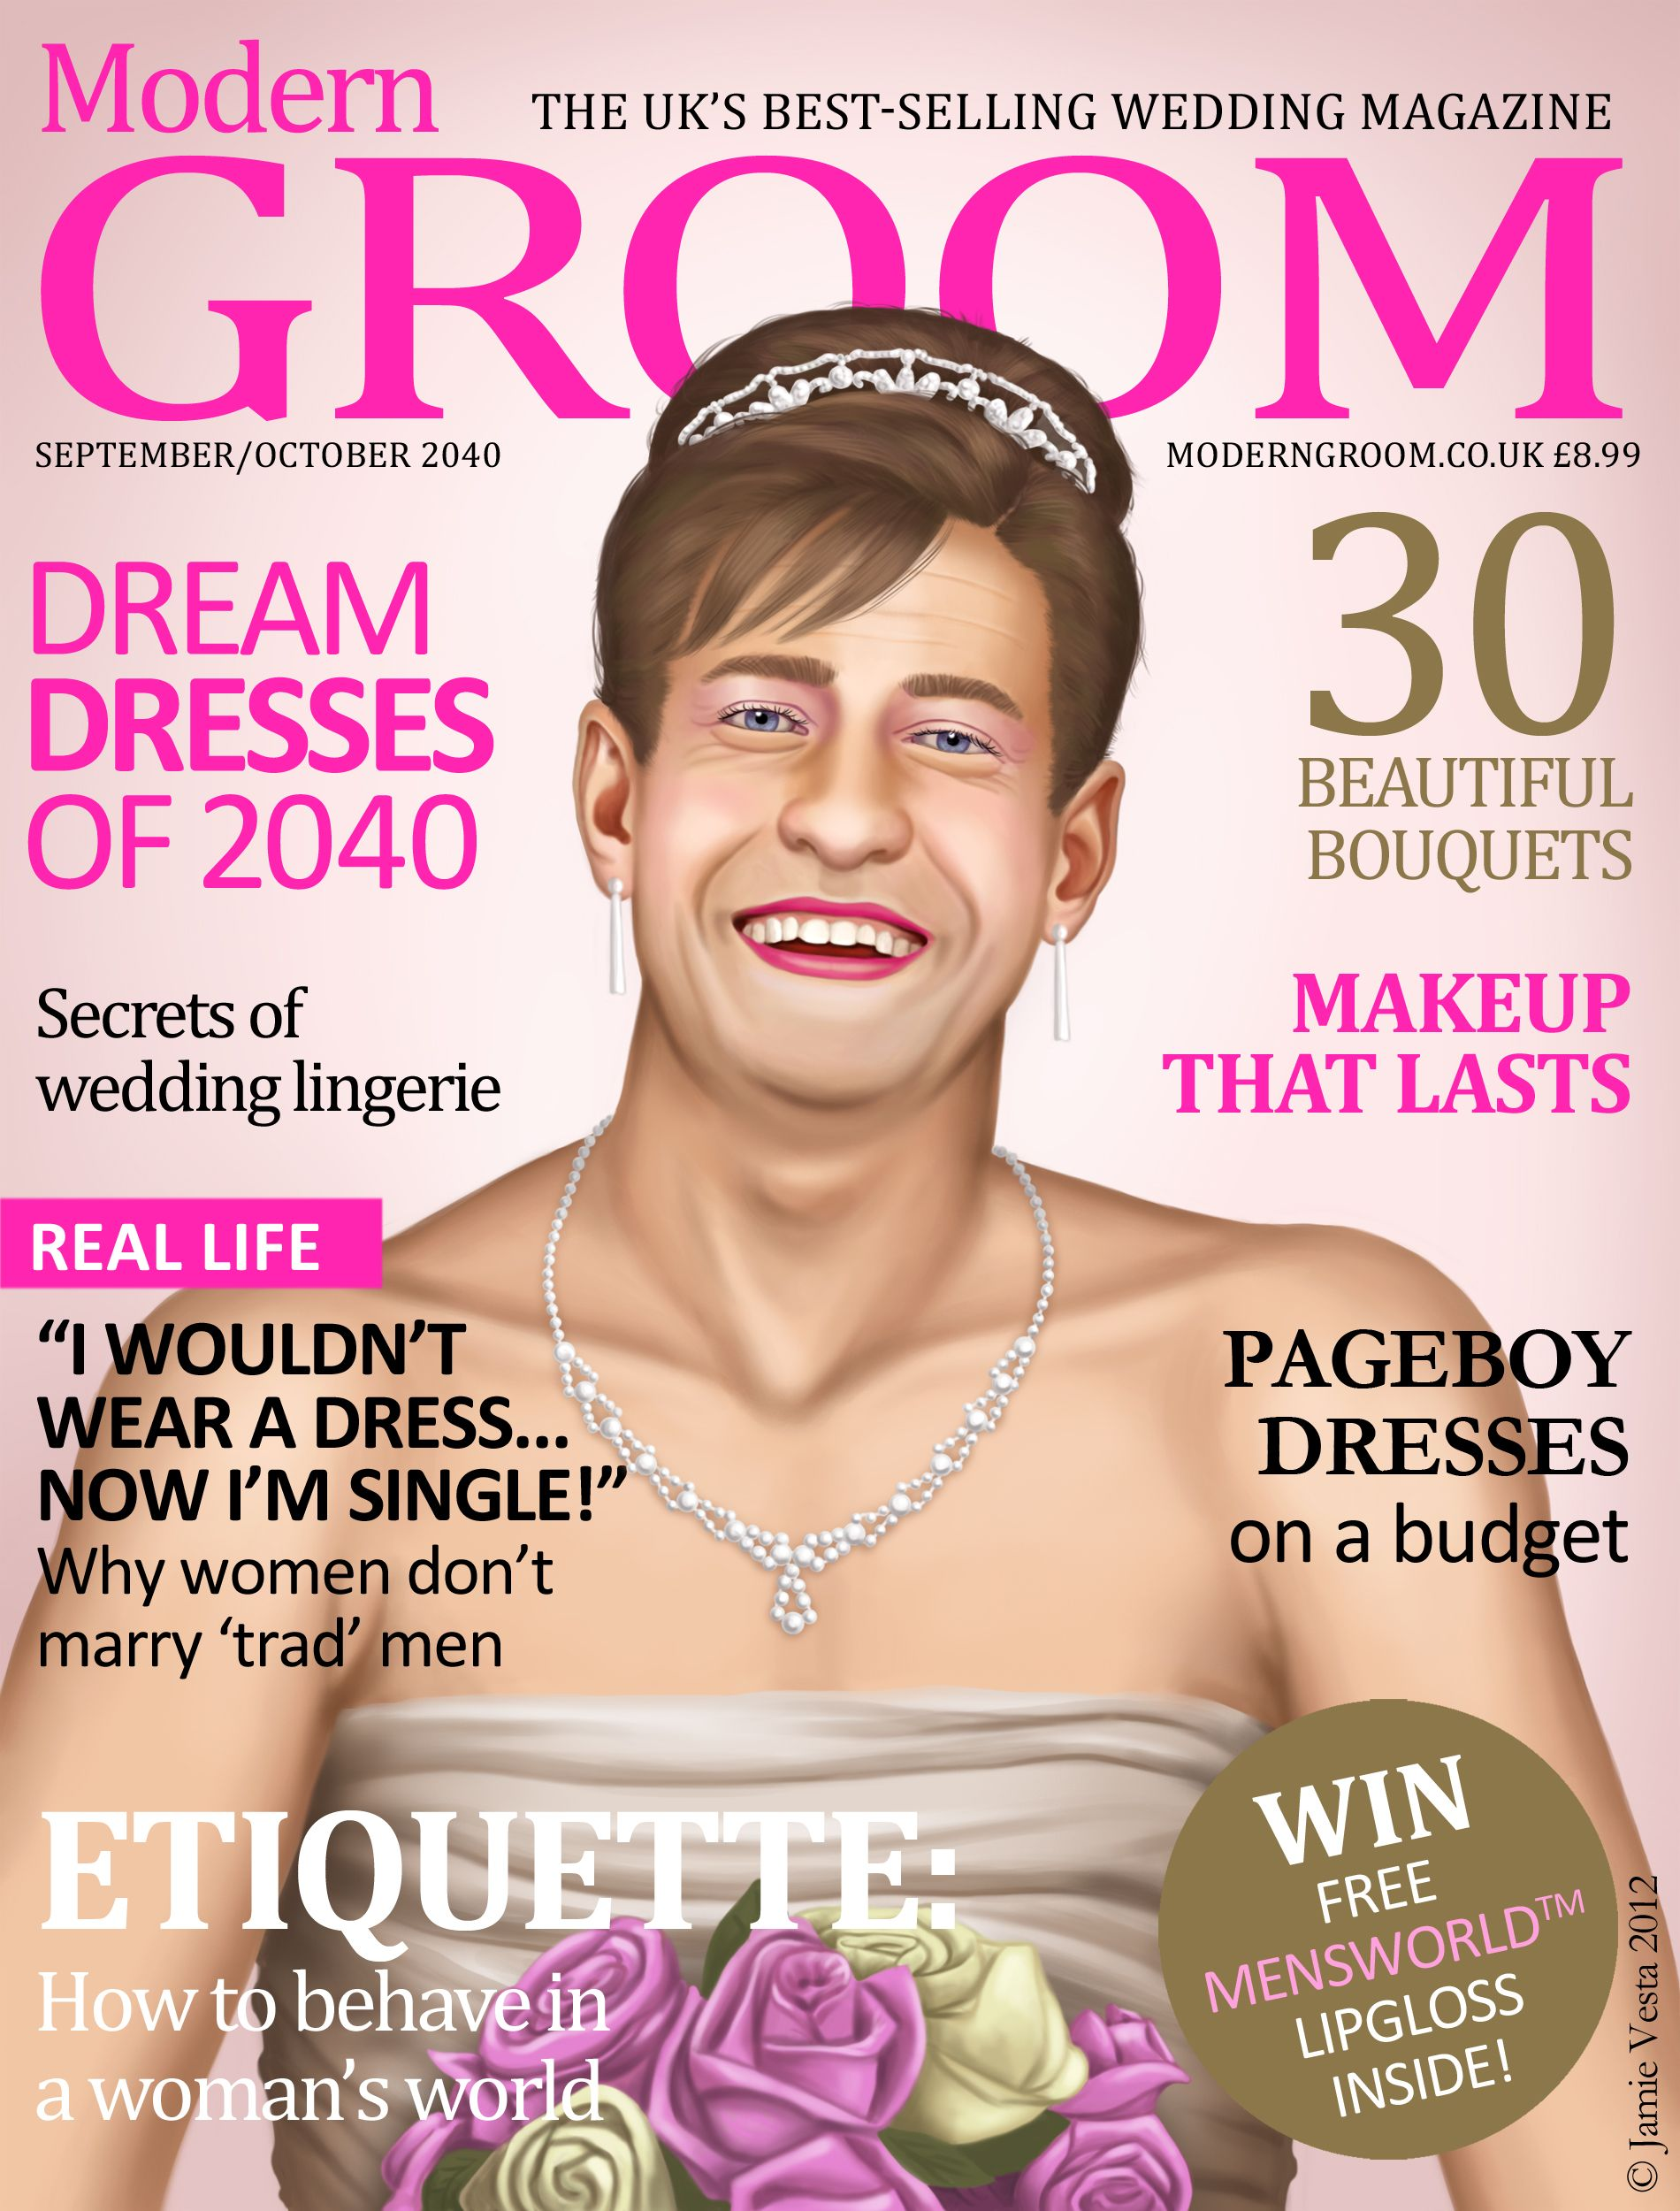 wedding magazines Modern groom When women became the dominant sex wedding magazines would never be the same again